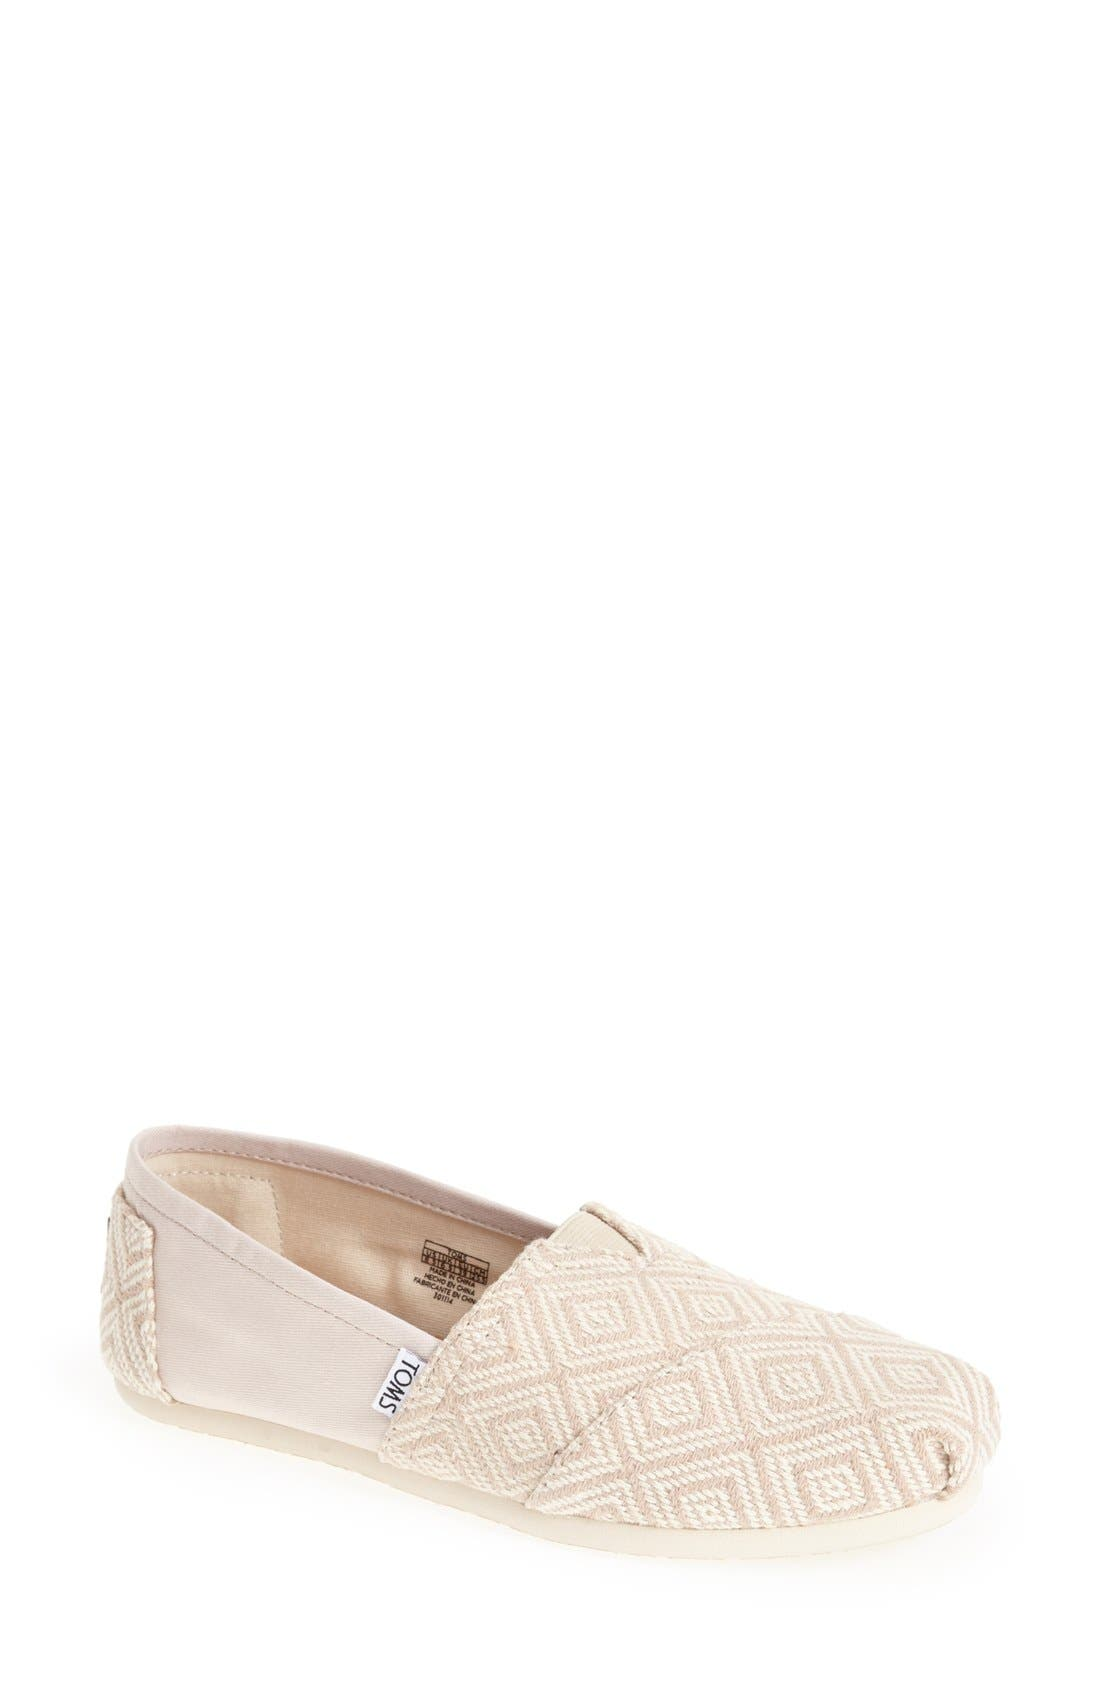 Main Image - TOMS 'Classic - Whisper Diamond' Woven Slip-On (Women)